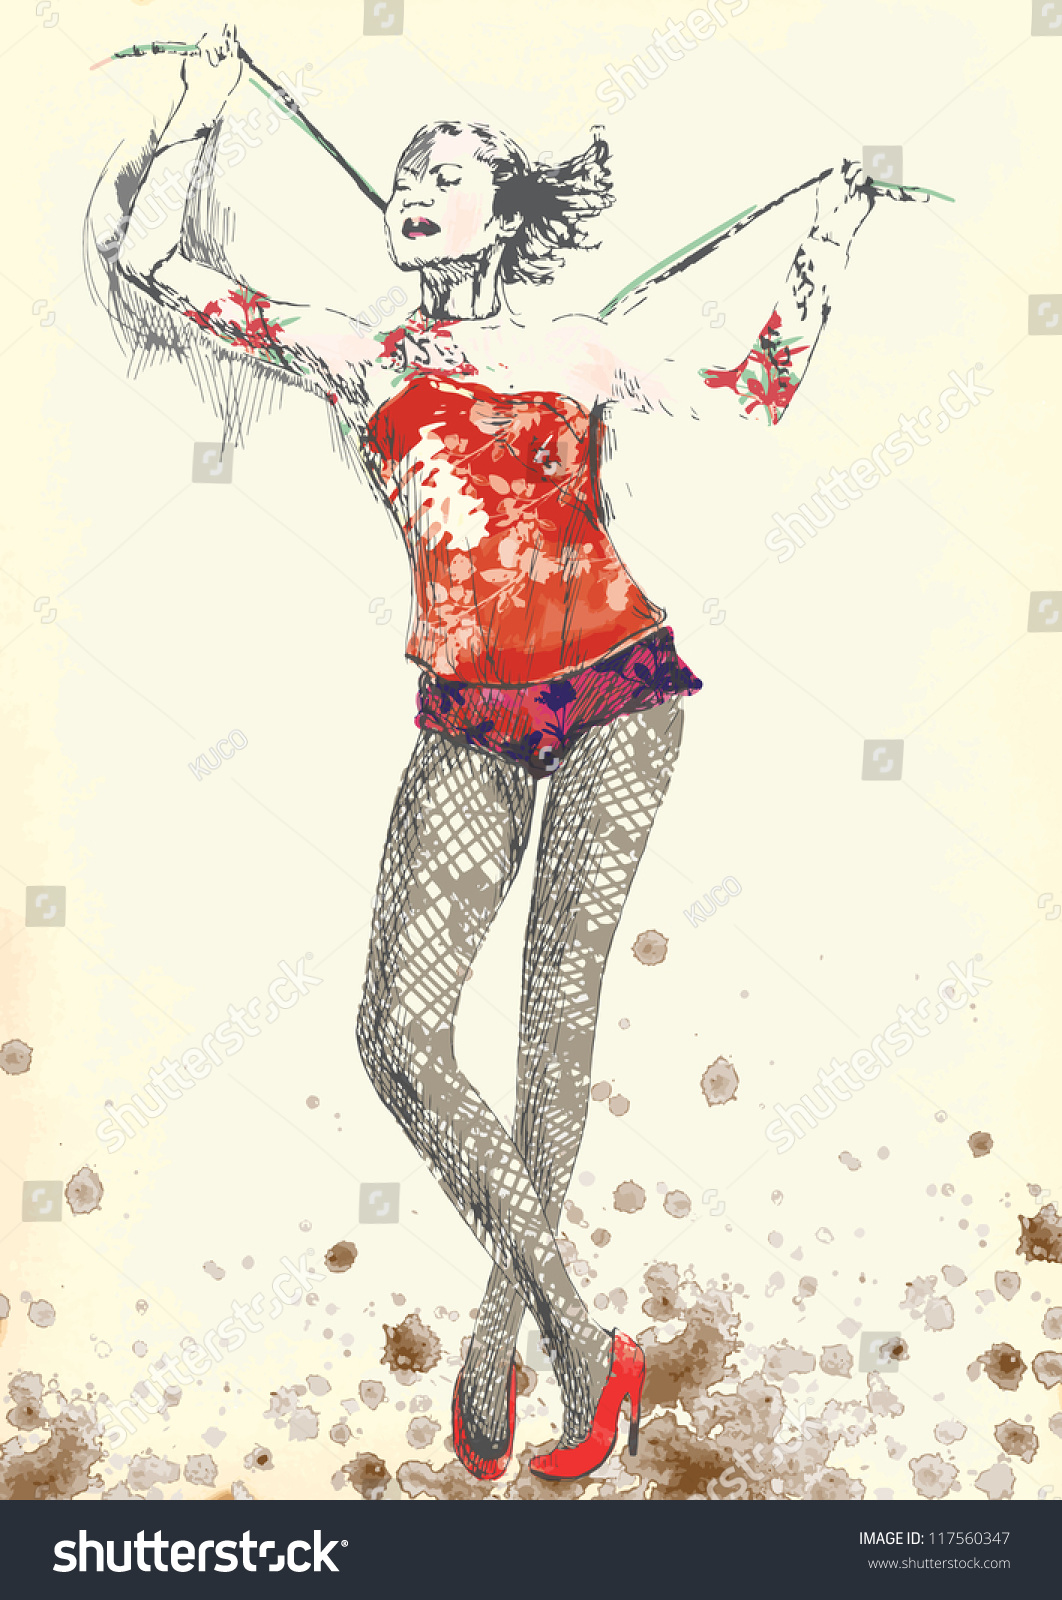 Illustration In Vintage Style Of A Gymnastics And Circus Topic Description Editable In Several